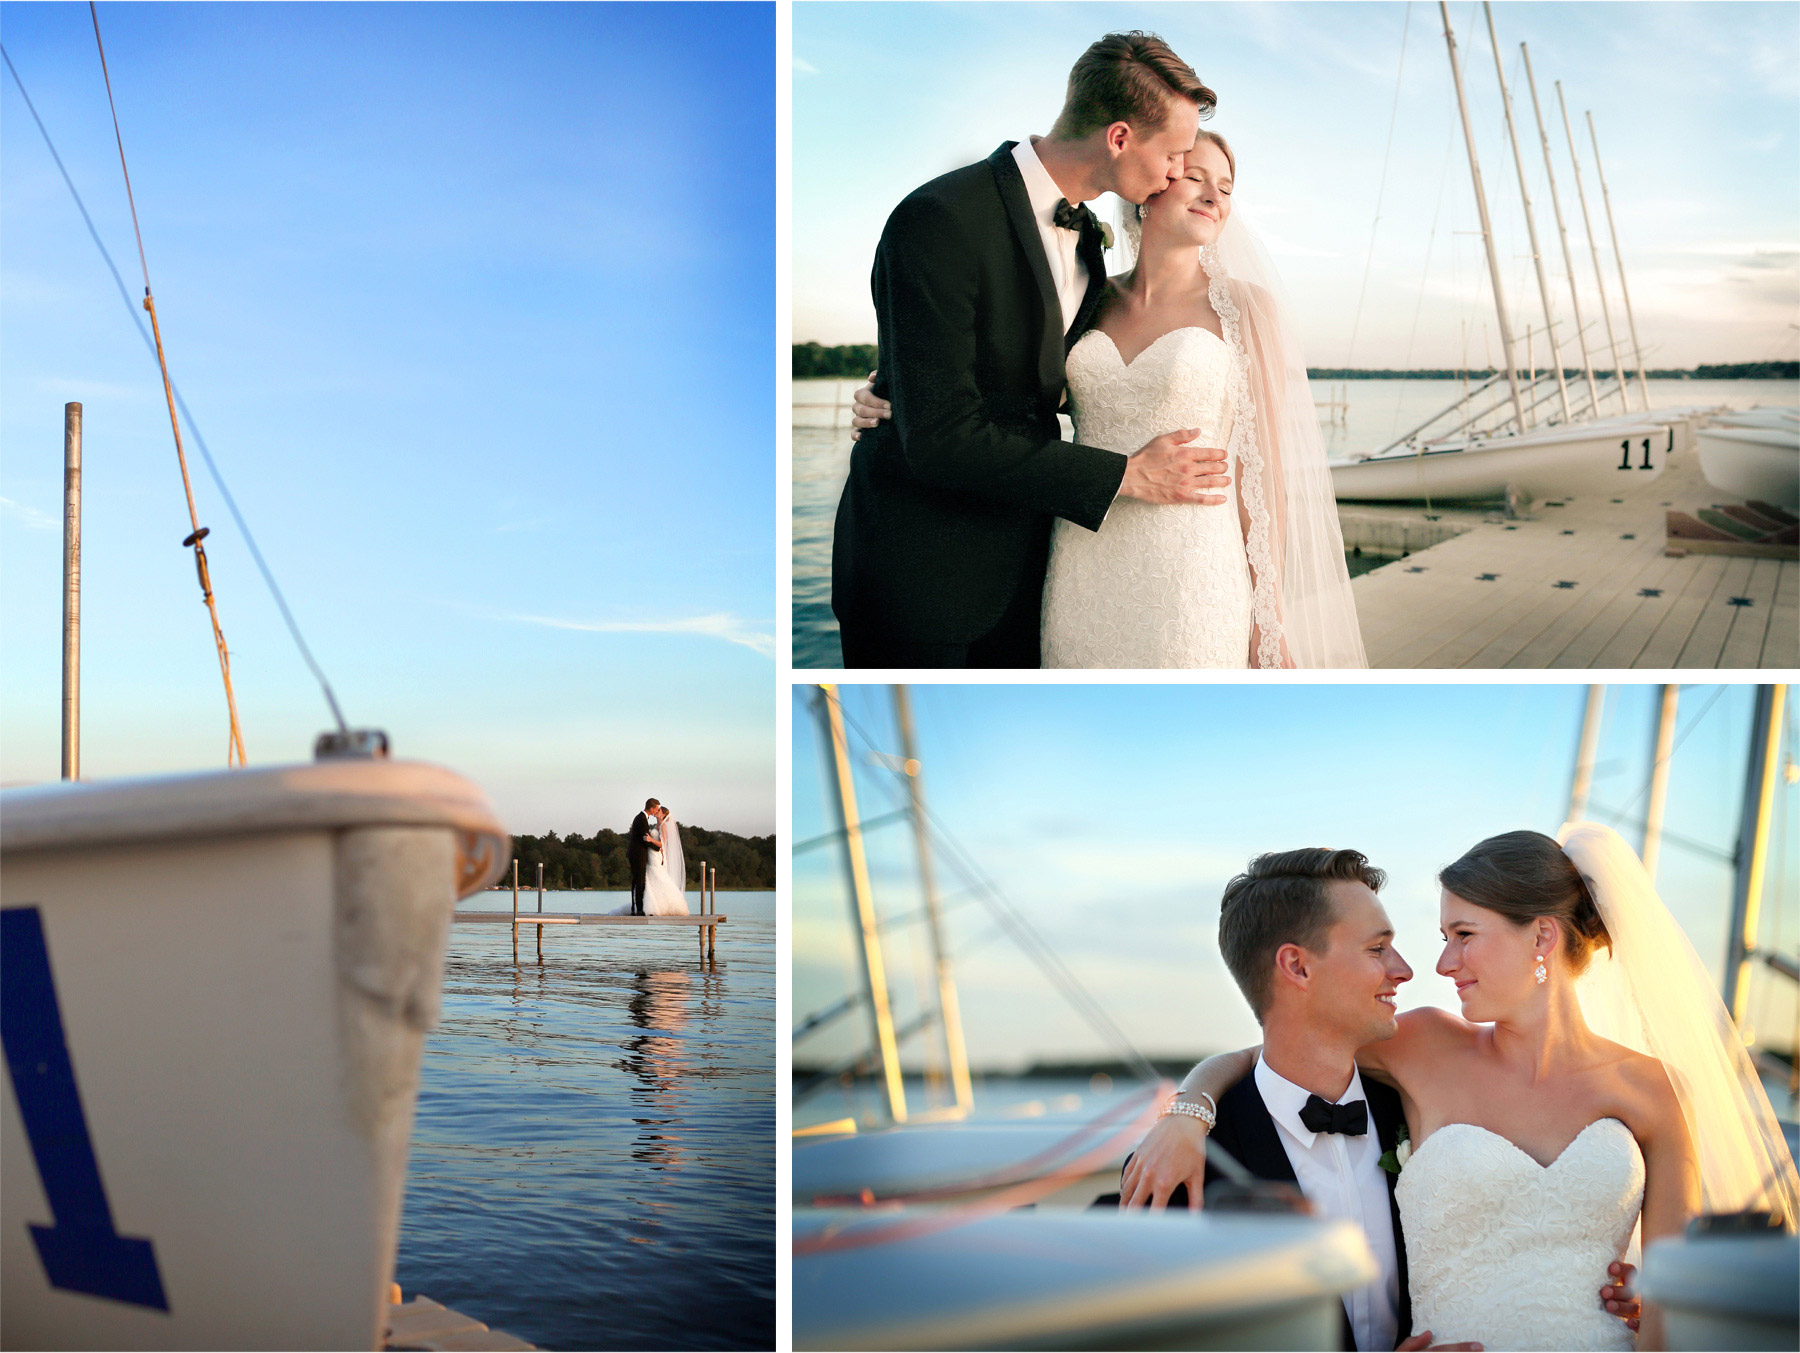 13-White-Bear-Lake-Minnesota-Wedding-Photographer-by-Andrew-Vick-Photography-Summer-Yacht-Club-Bride-Groom-Kiss-Hug-Cuddle-Docks-Sailboats-Boats-Sunset-Hallie-and-Ted.jpg